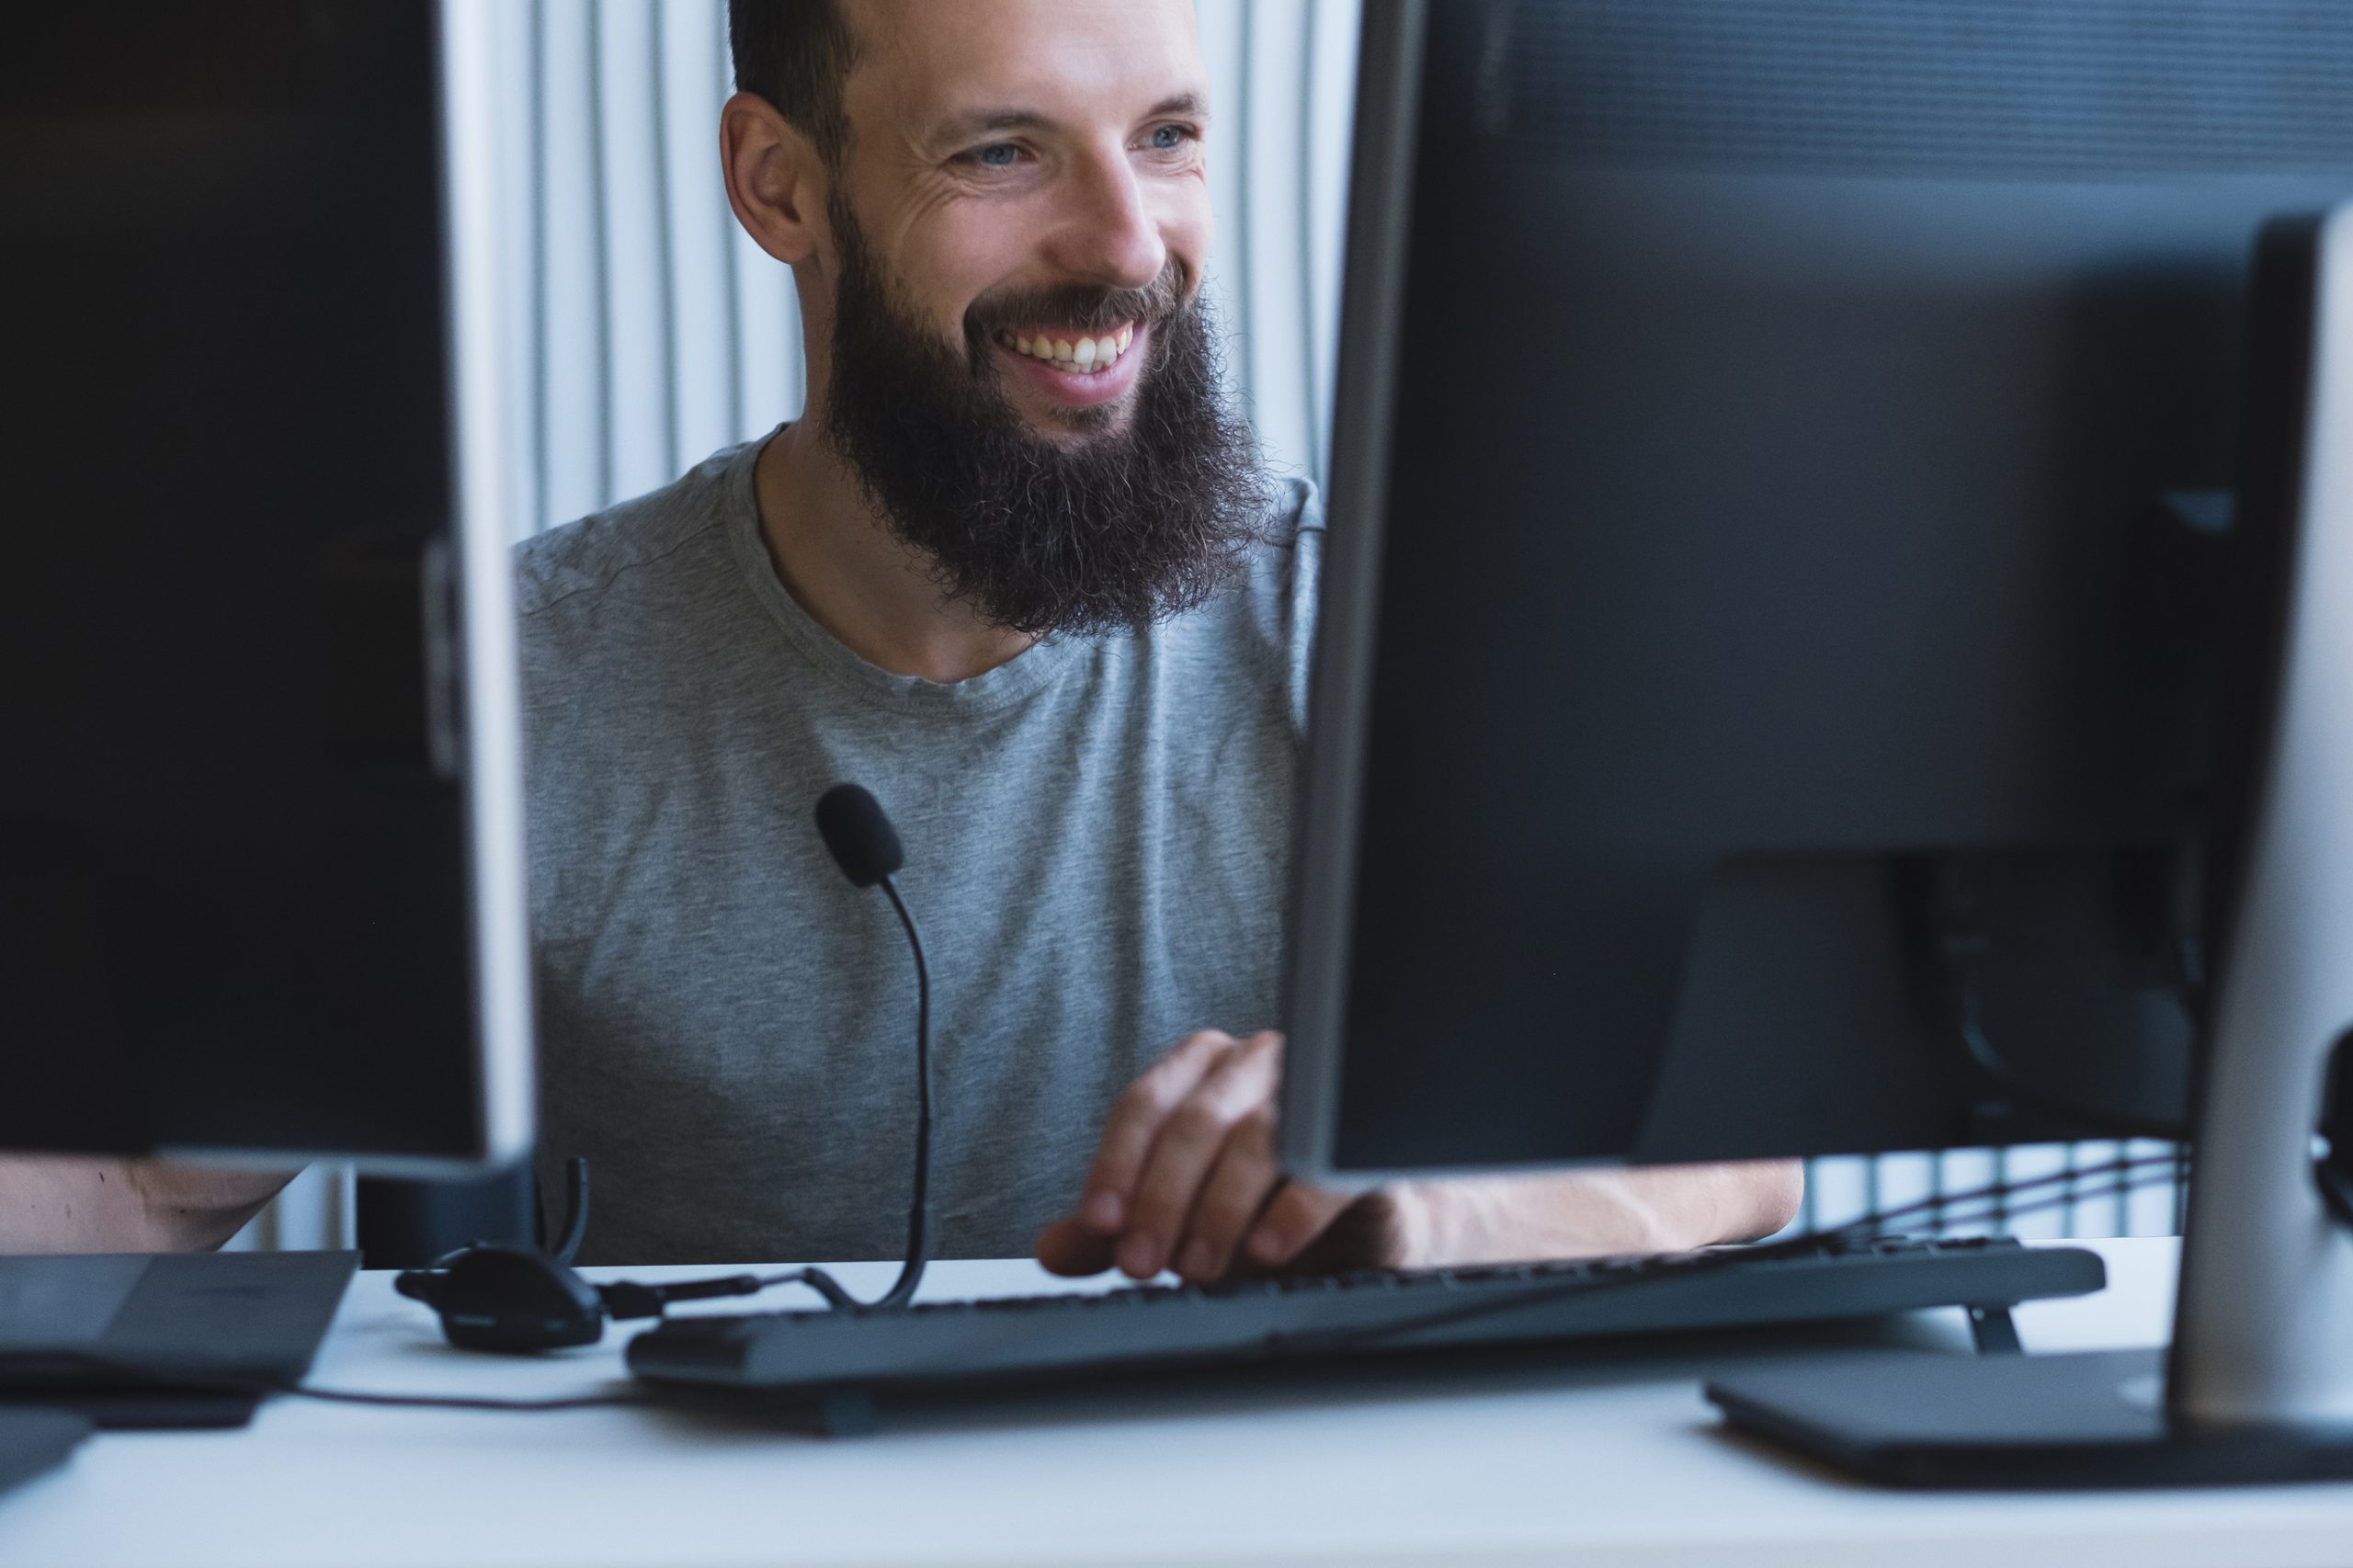 A male IT technician in front of two computer monitors phoning a customer